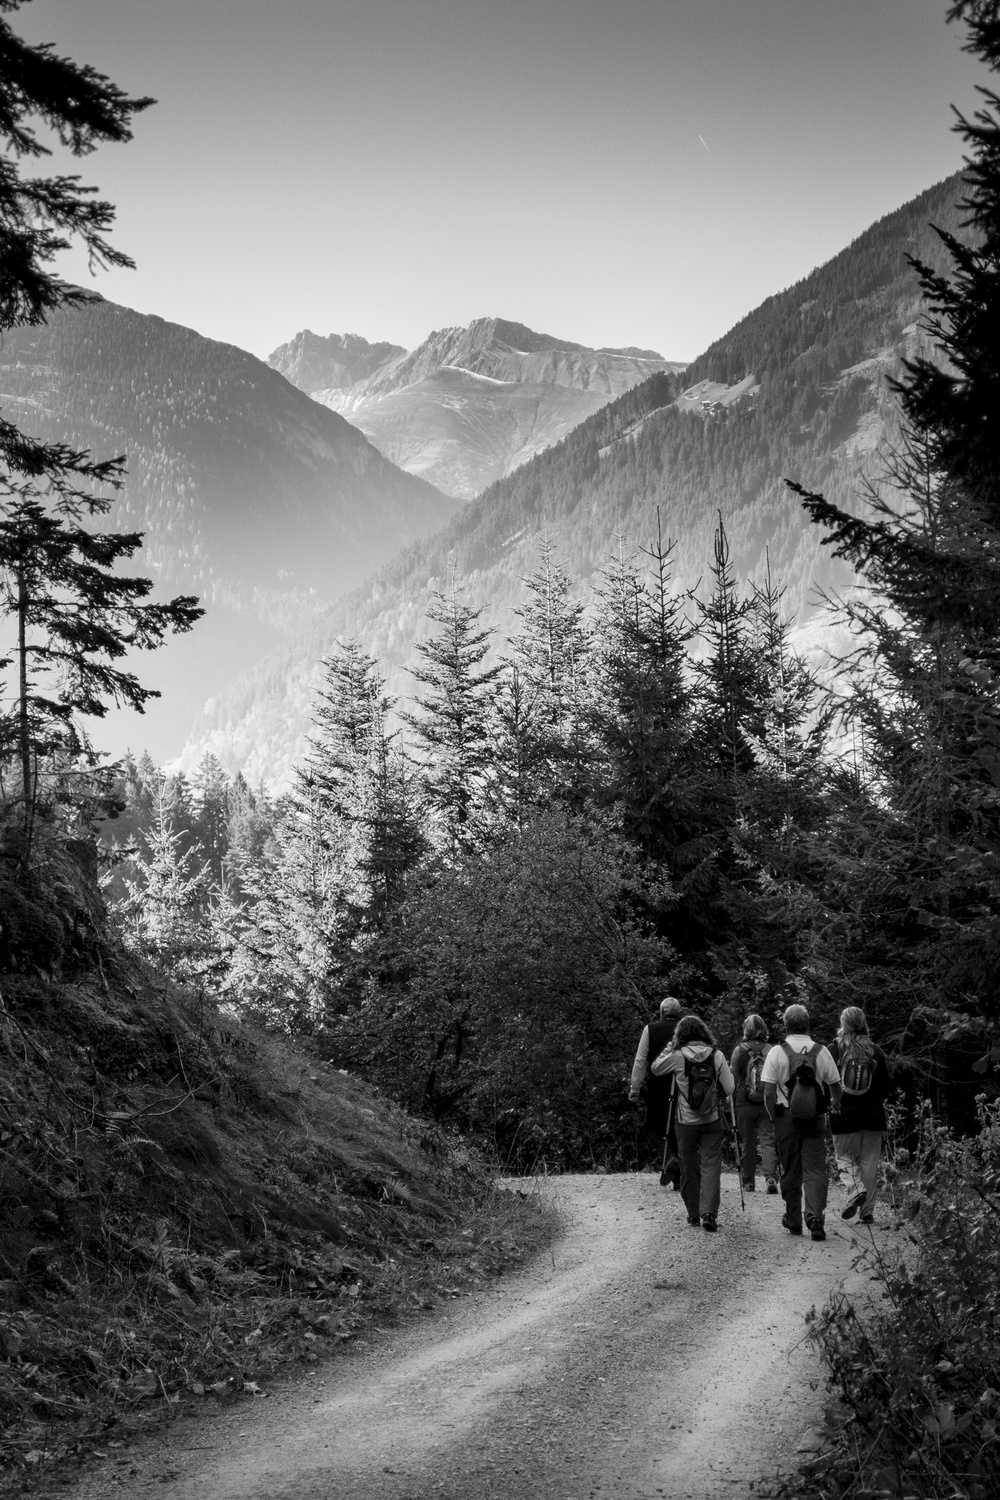 Walking down from the Wiesenhof back down to Mayrhofen